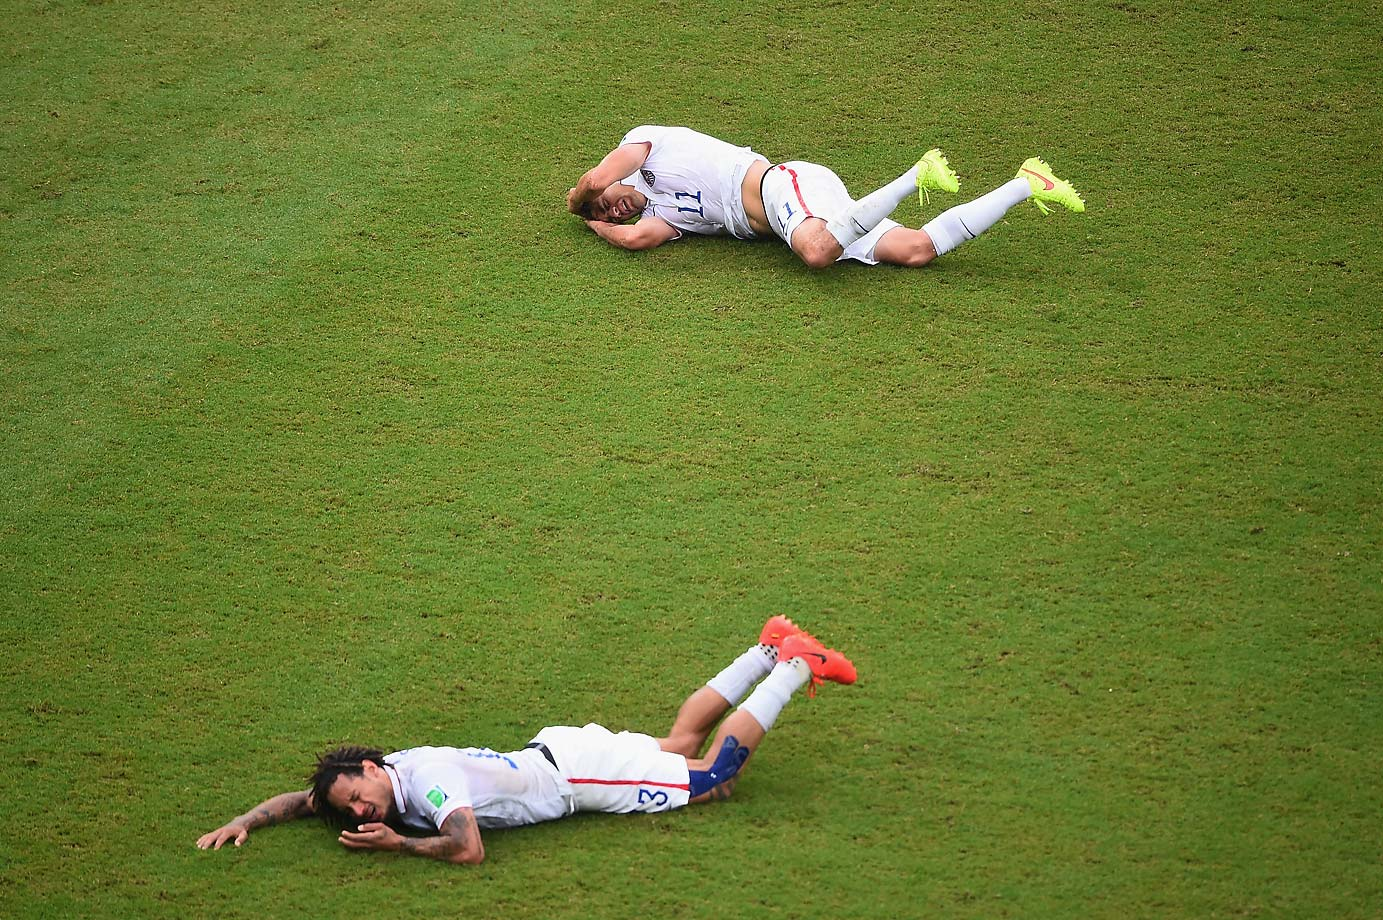 Jermaine Jones (front) and teammate Alejandro Bedoya collided violently in the match against Germany.